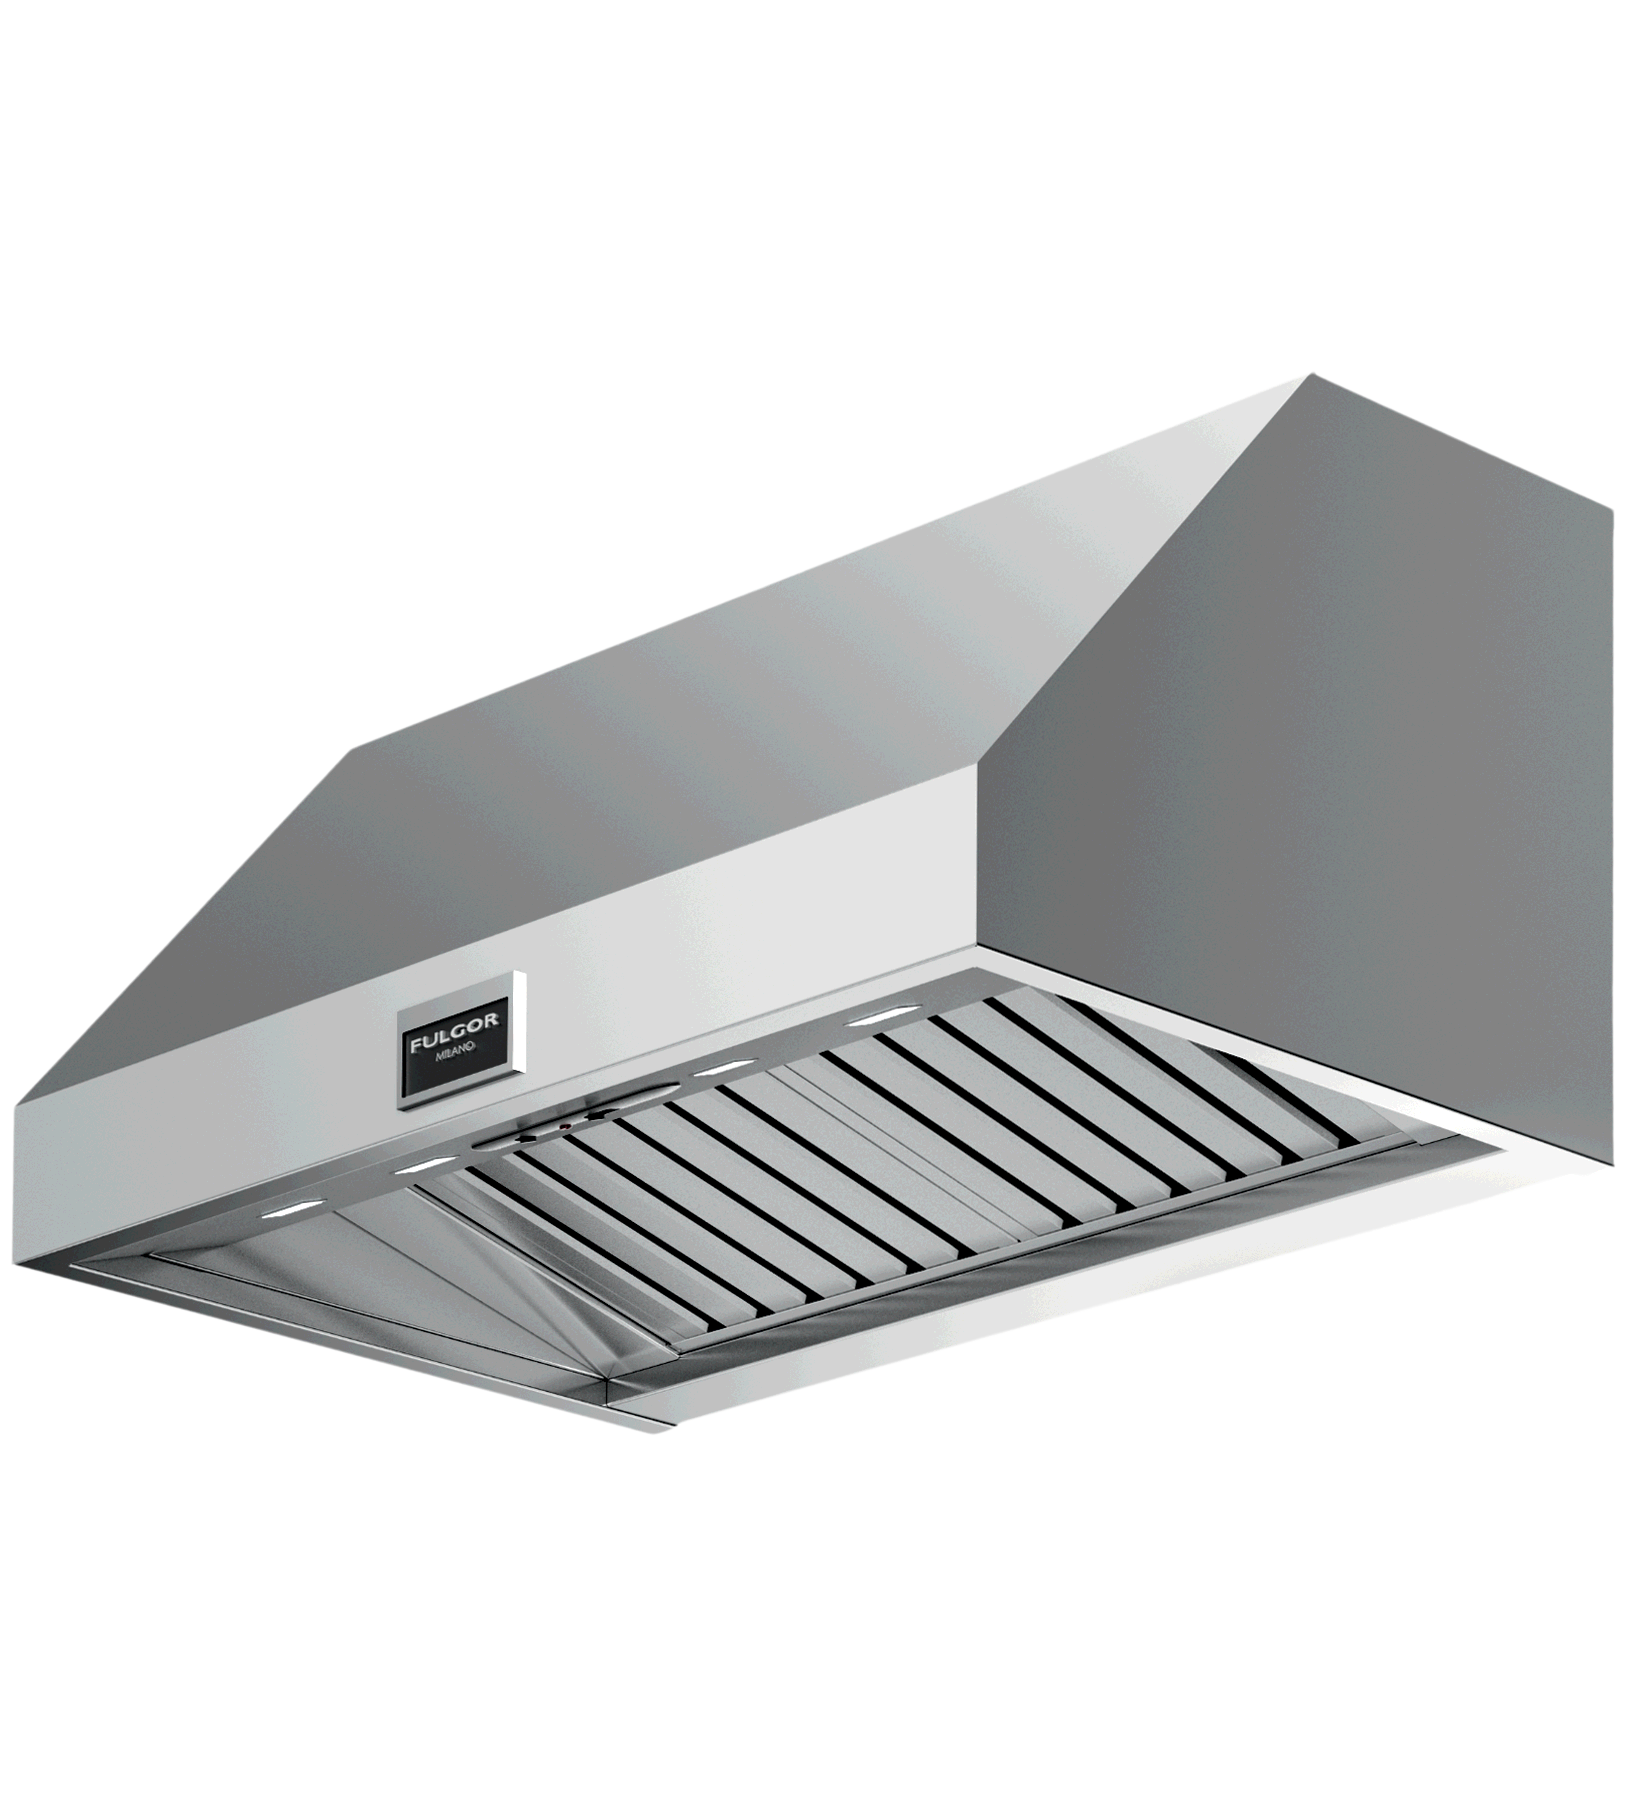 FULGOR Rangehood 48inch in Stainless Steel color showcased by Corbeil Electro Store